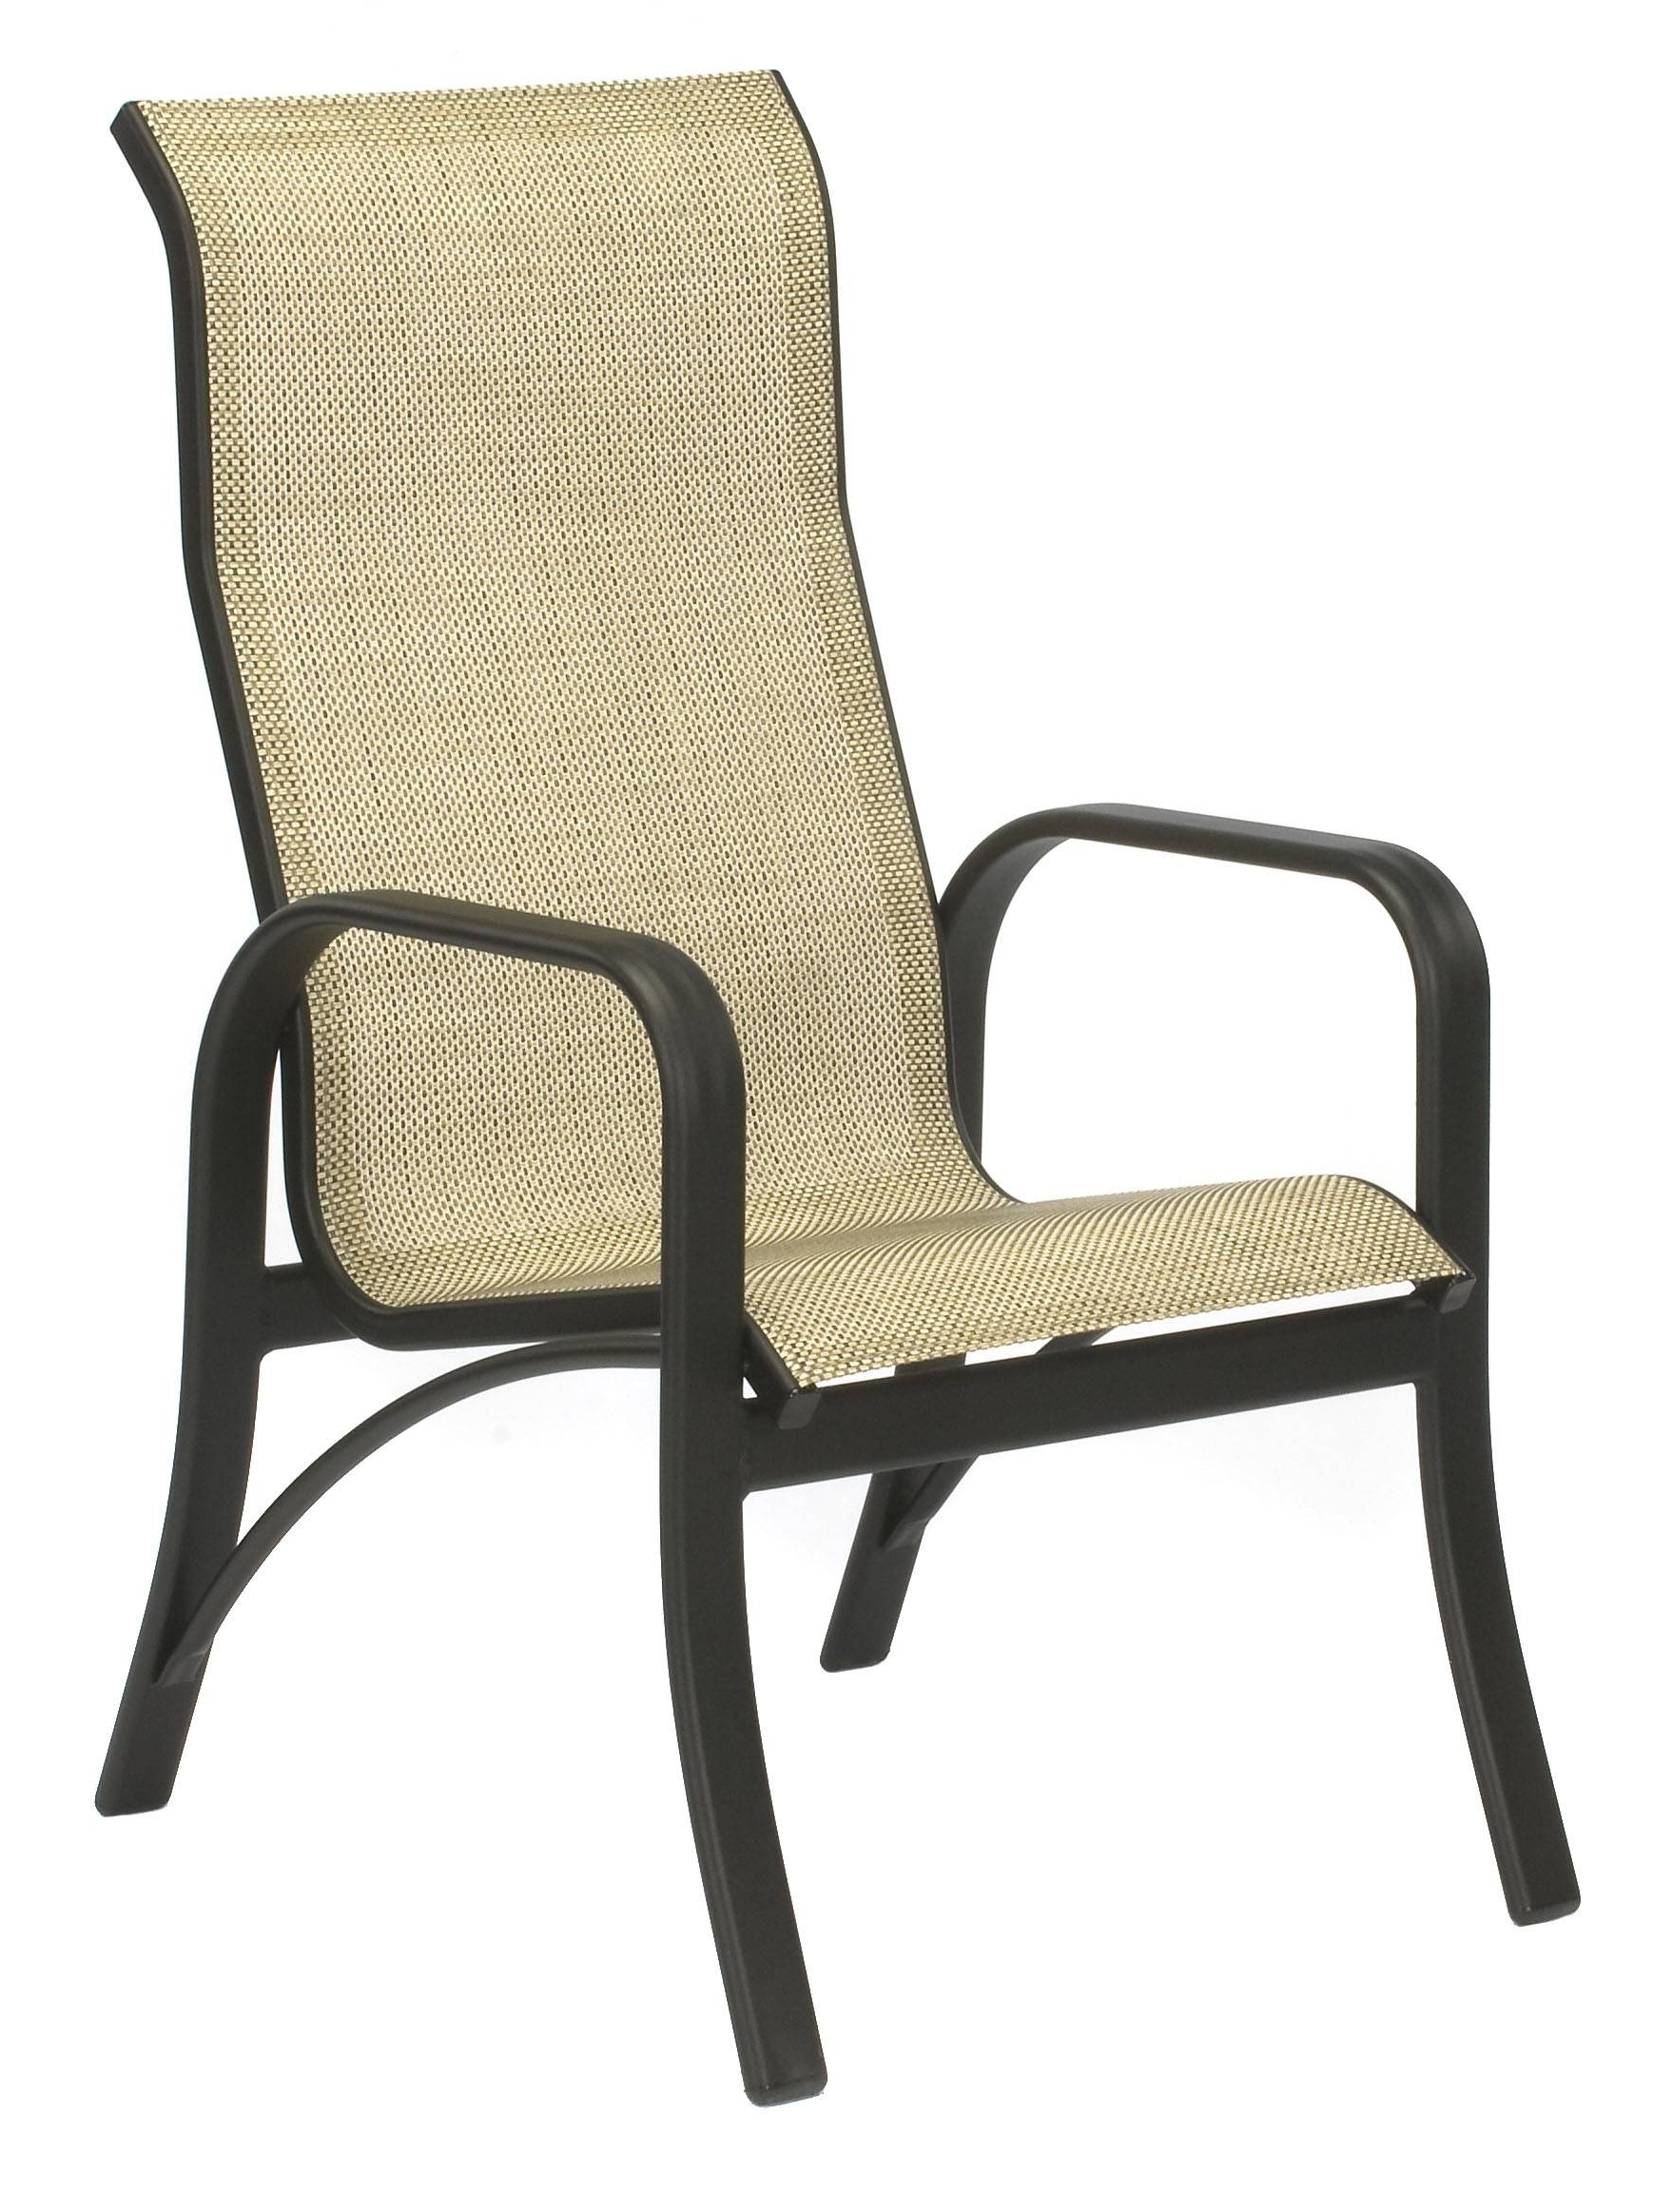 Well Liked Sling Black Outdoor Chairs Bamboo Set Of Walmart Marvellous Swivel Regarding Patio Sling Rocking Chairs (View 19 of 20)